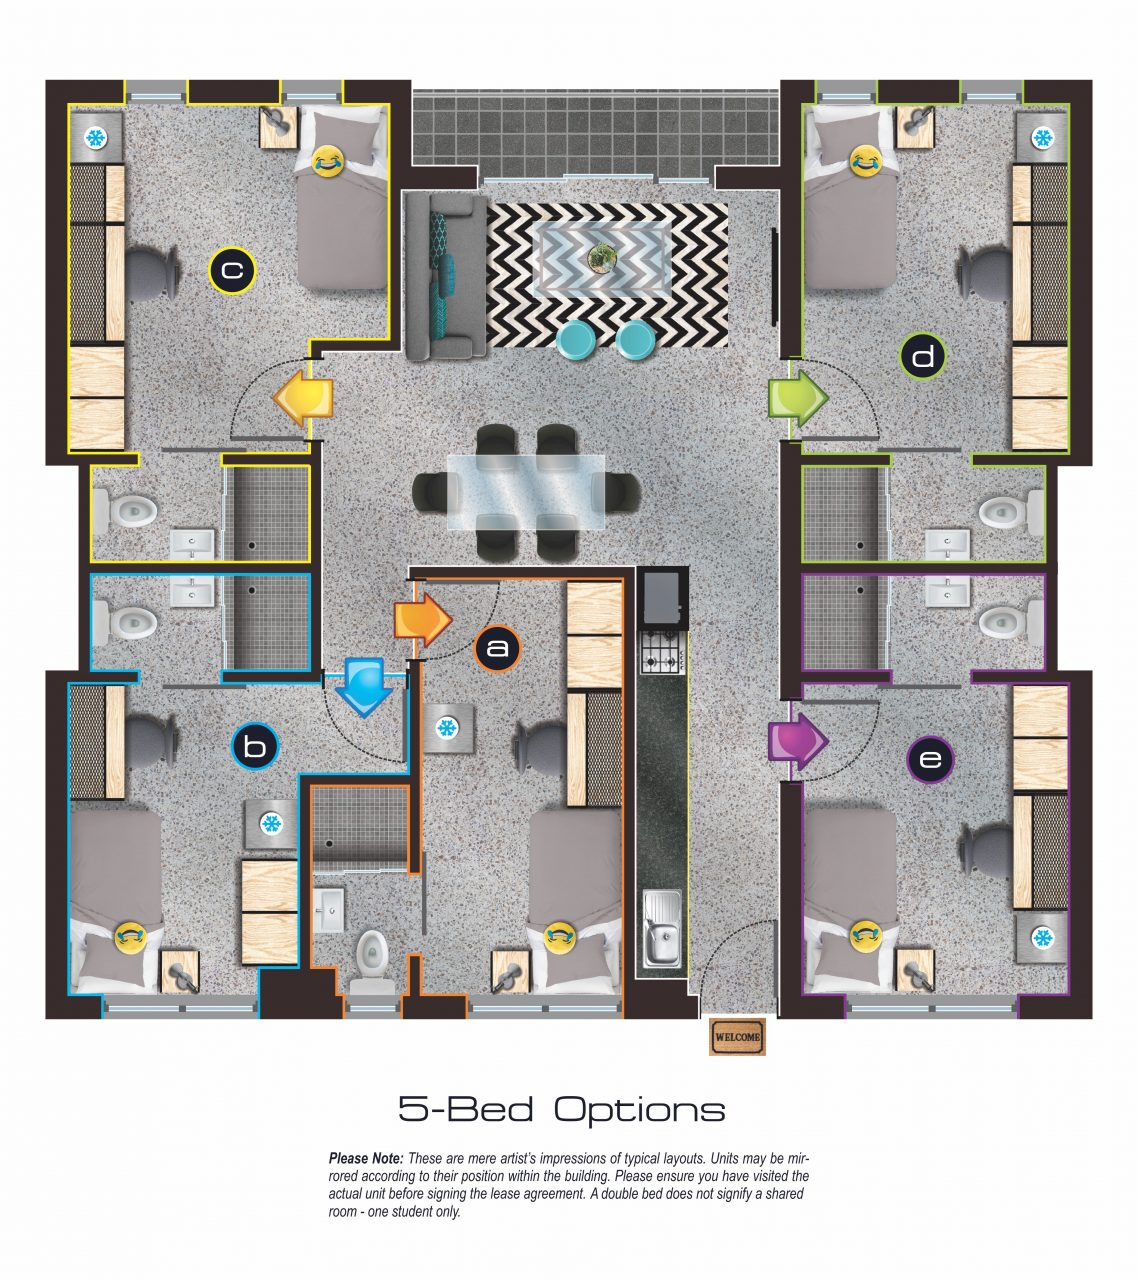 5 Bedroom Apartment: The Campus Student Accommodation